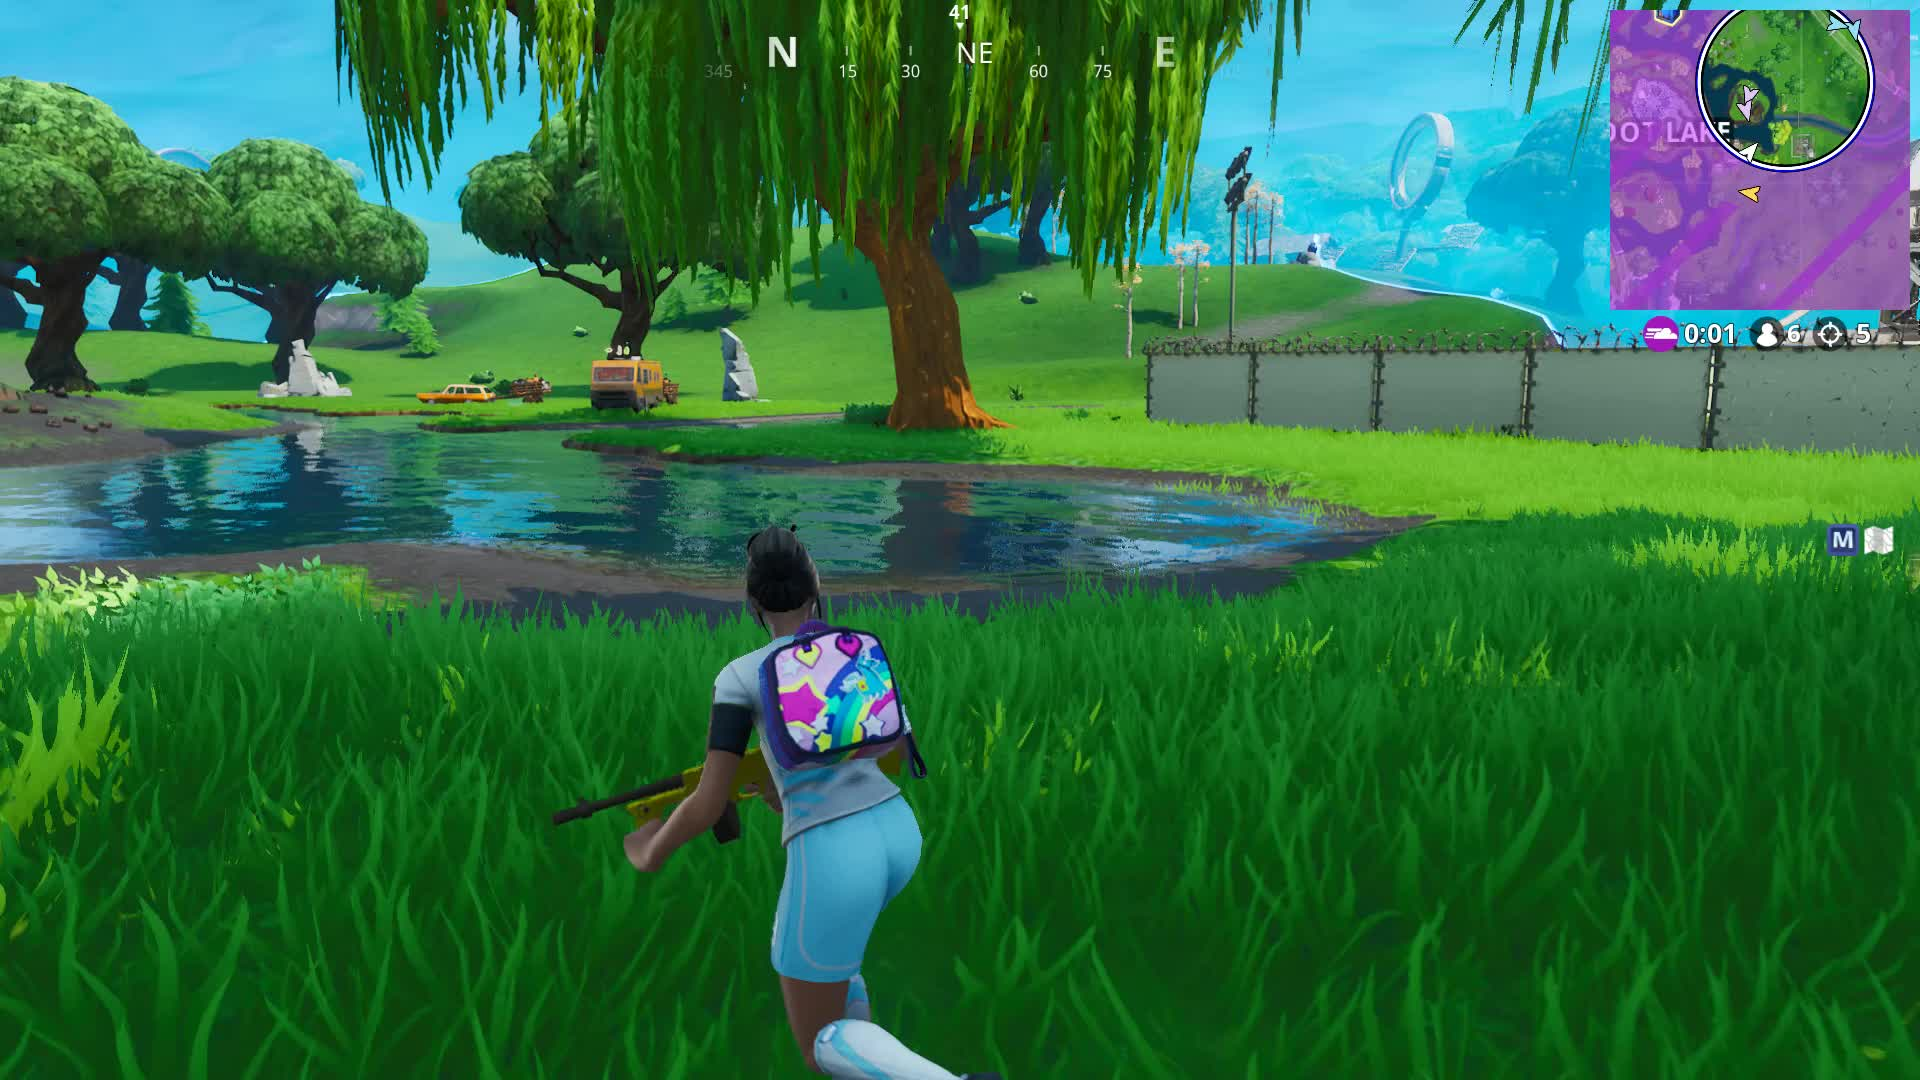 CNECT PRYXSOS, Fortnite, FortniteBR, Gaming, Gif Your Game, GifYourGame, Kill, CNECT PRYXSOS got a double kill GIFs